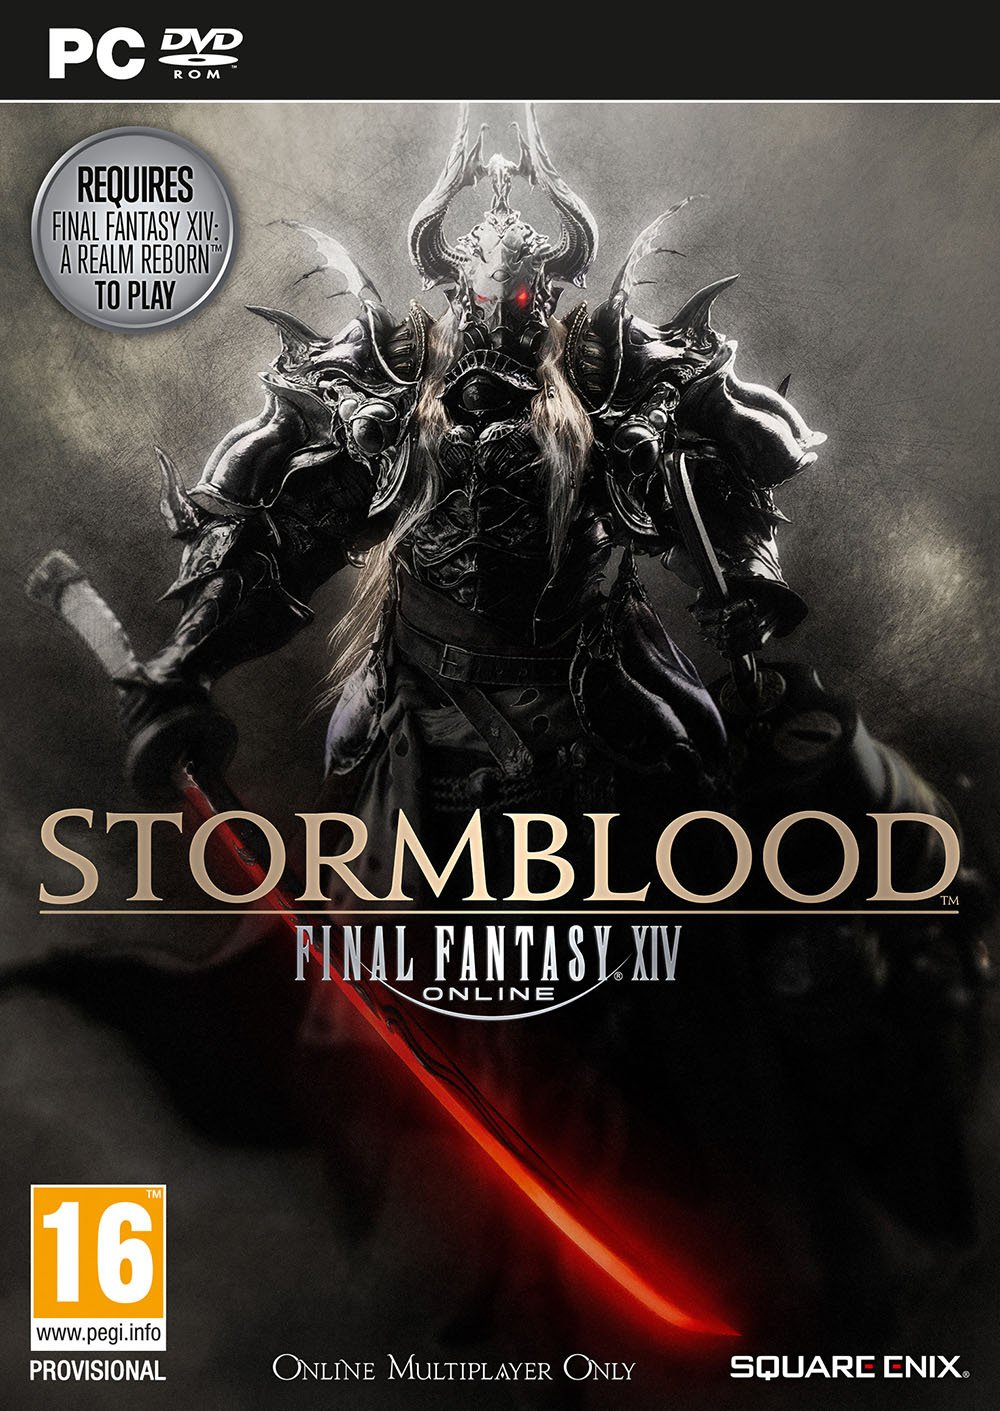 Final Fantasy XIV: Stormblood PC Game